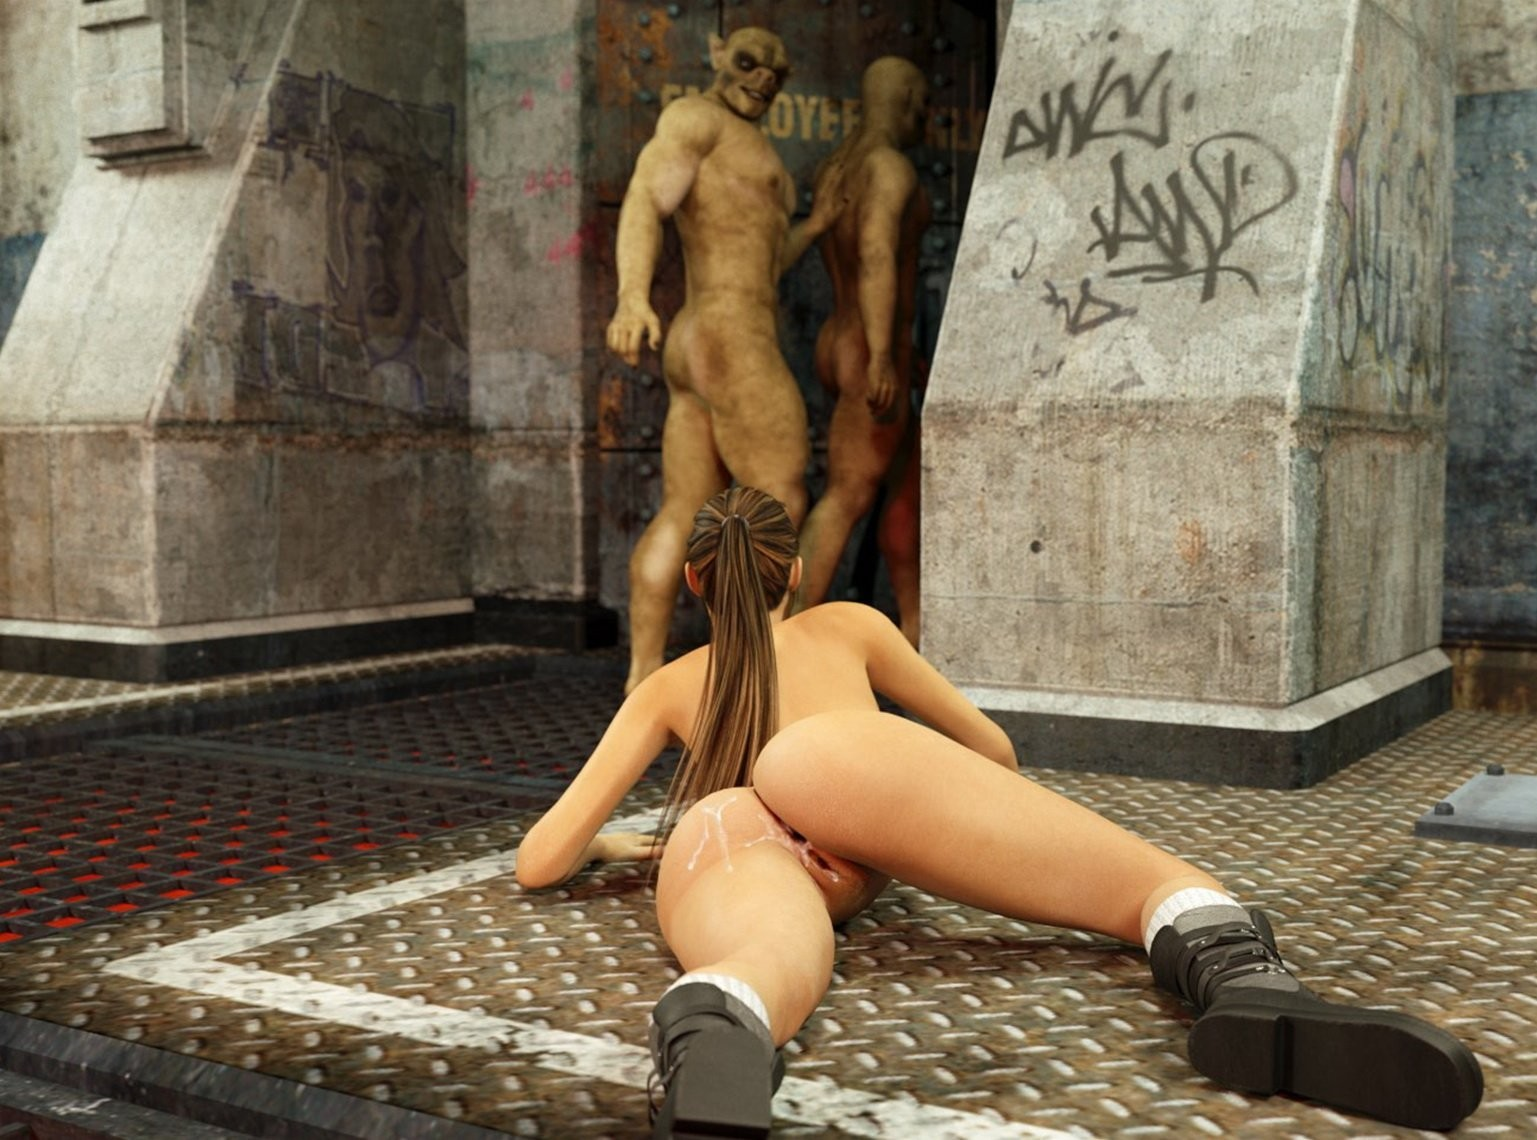 Lara croft x monster hentai adult image